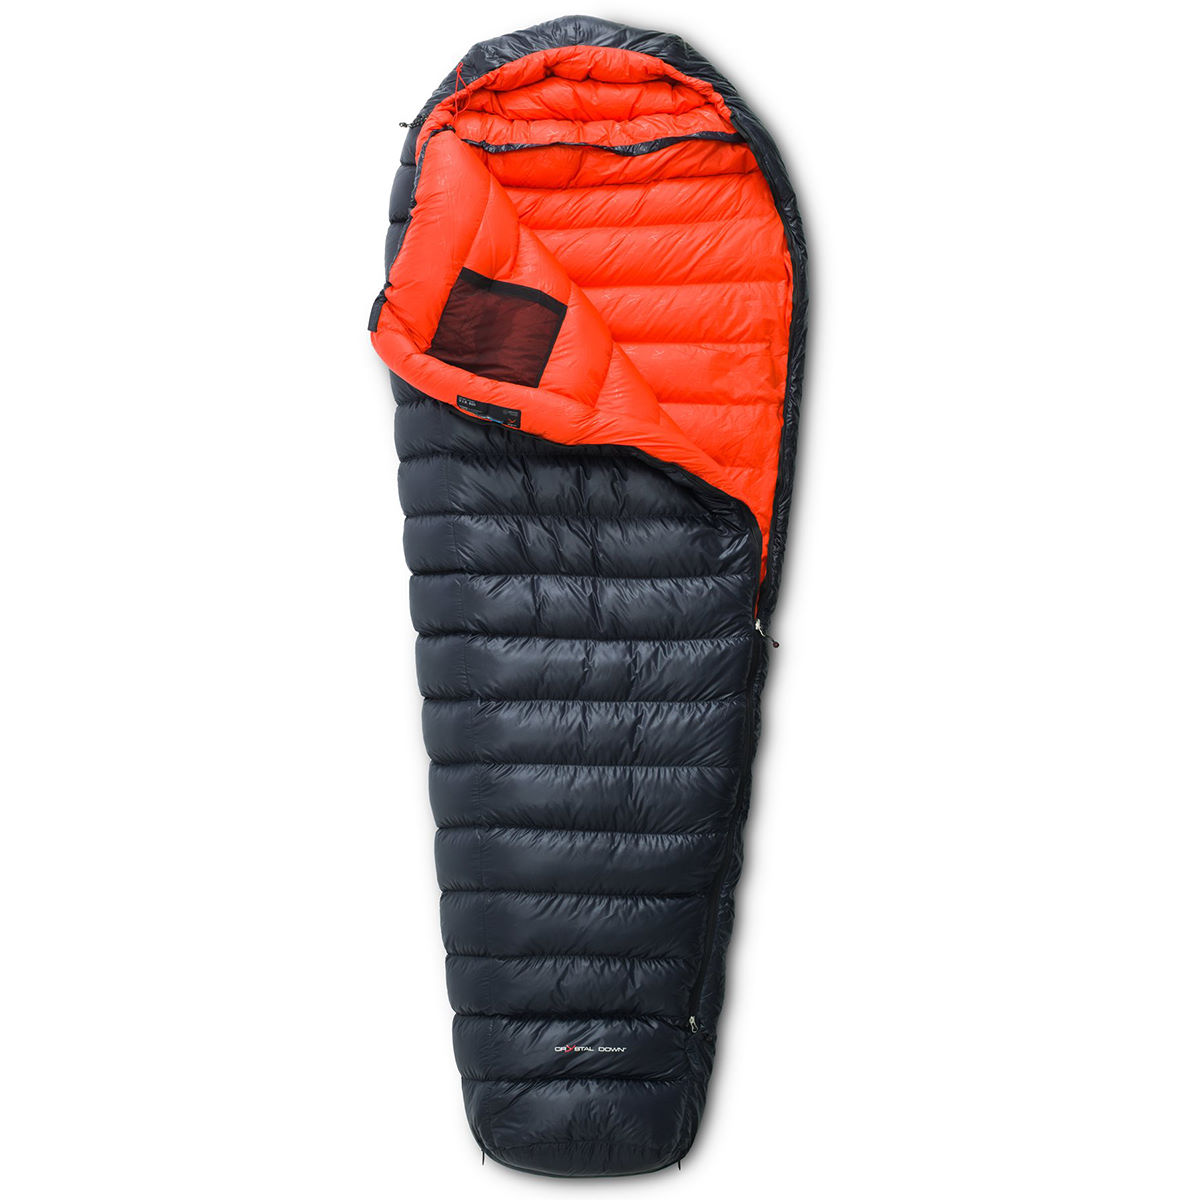 Yeti Yeti VIB 600 Sleeping Bag   Sleeping Bags